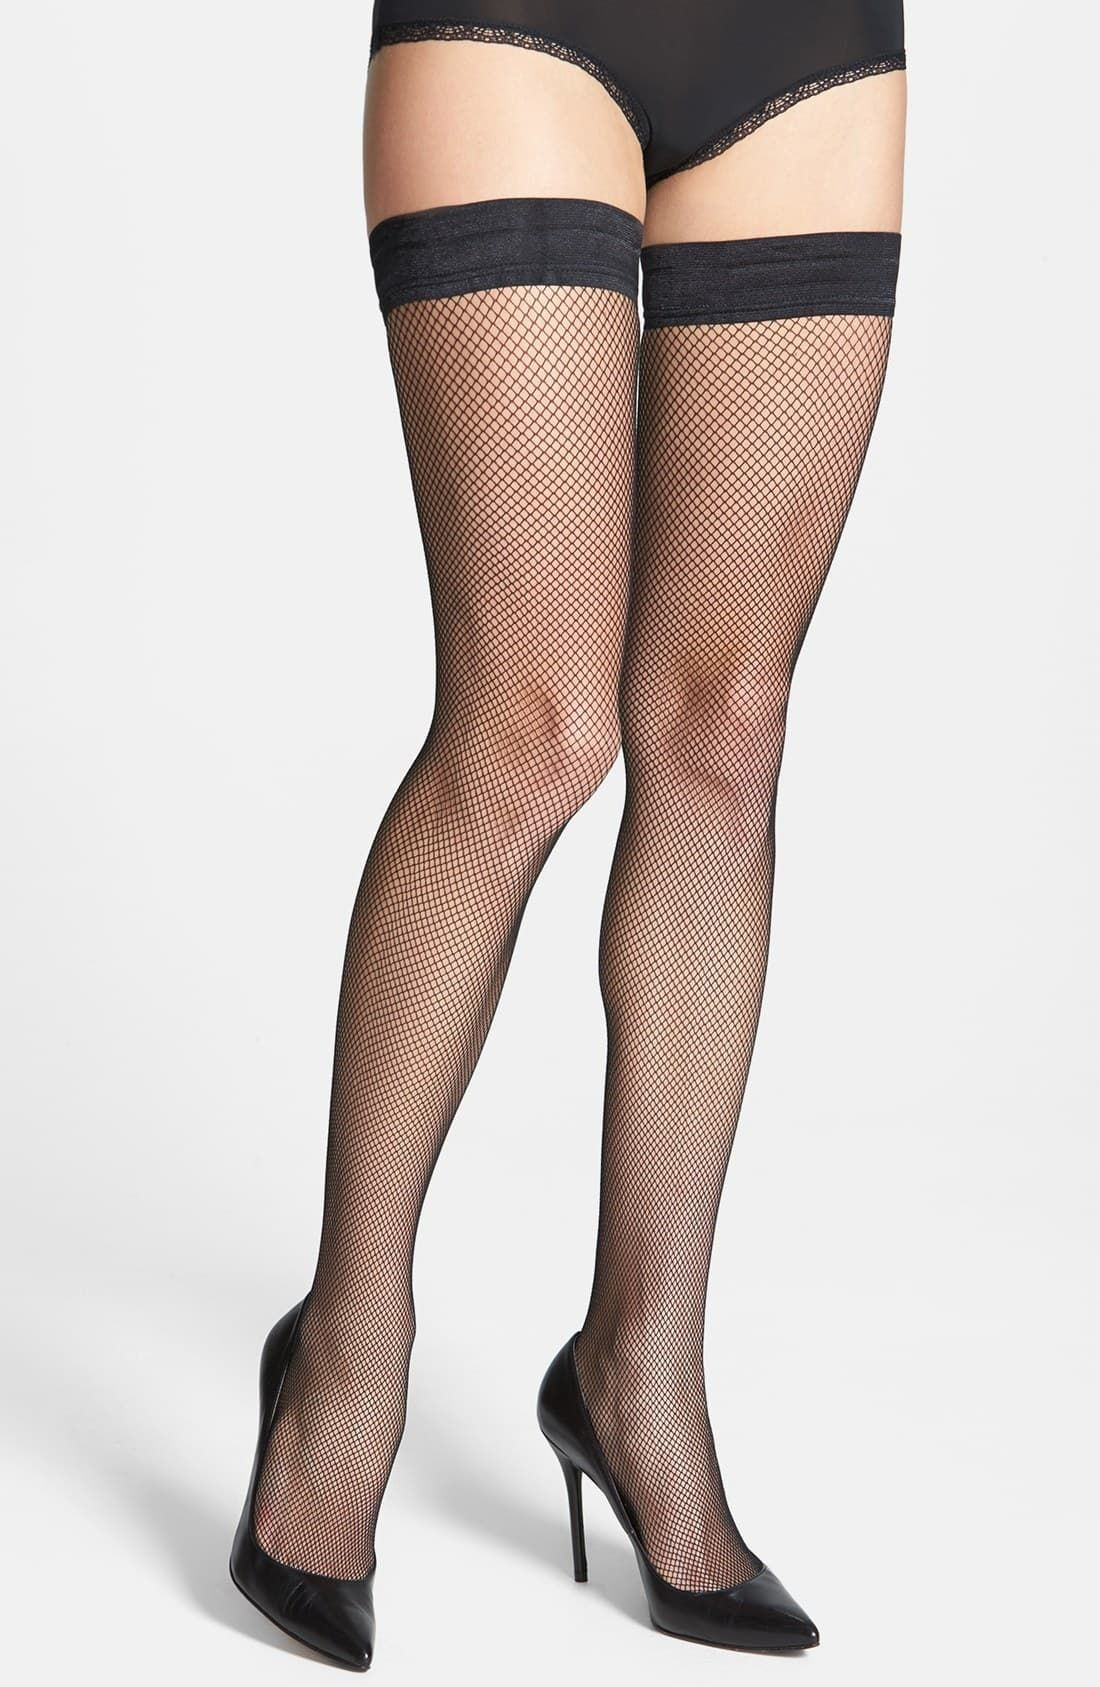 Plus Size Hosiery Black Fishnet Lace Top Stay Up Silicone Thigh High Stockings